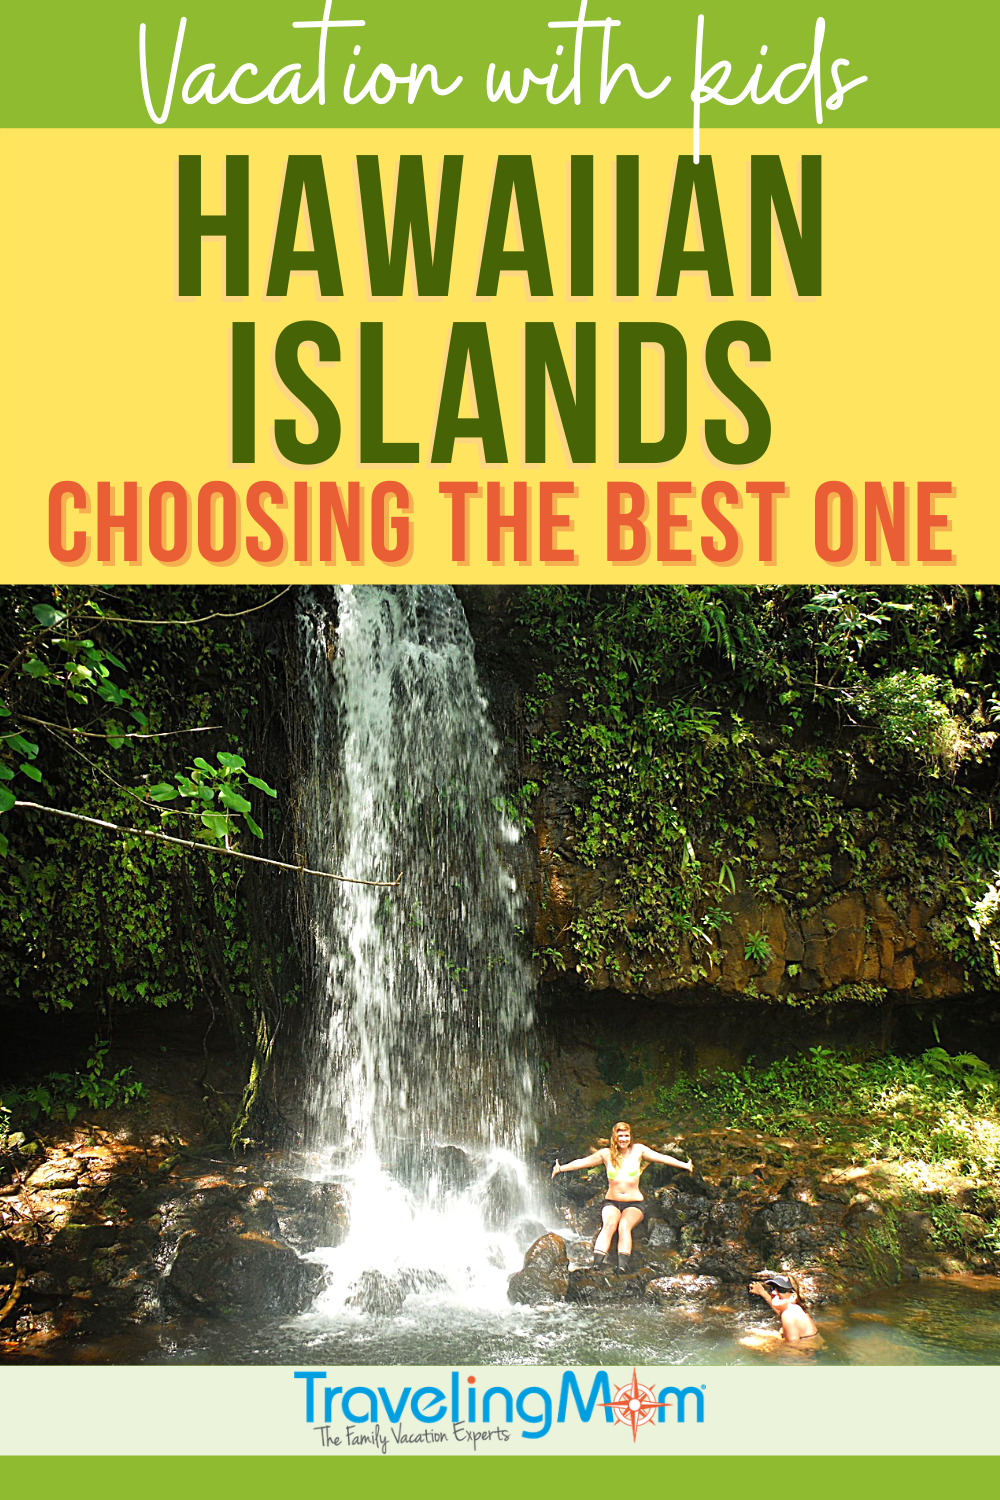 pin with words hawaiian islands choosing the best one with an image of a rocky waterfall into a swimming hole